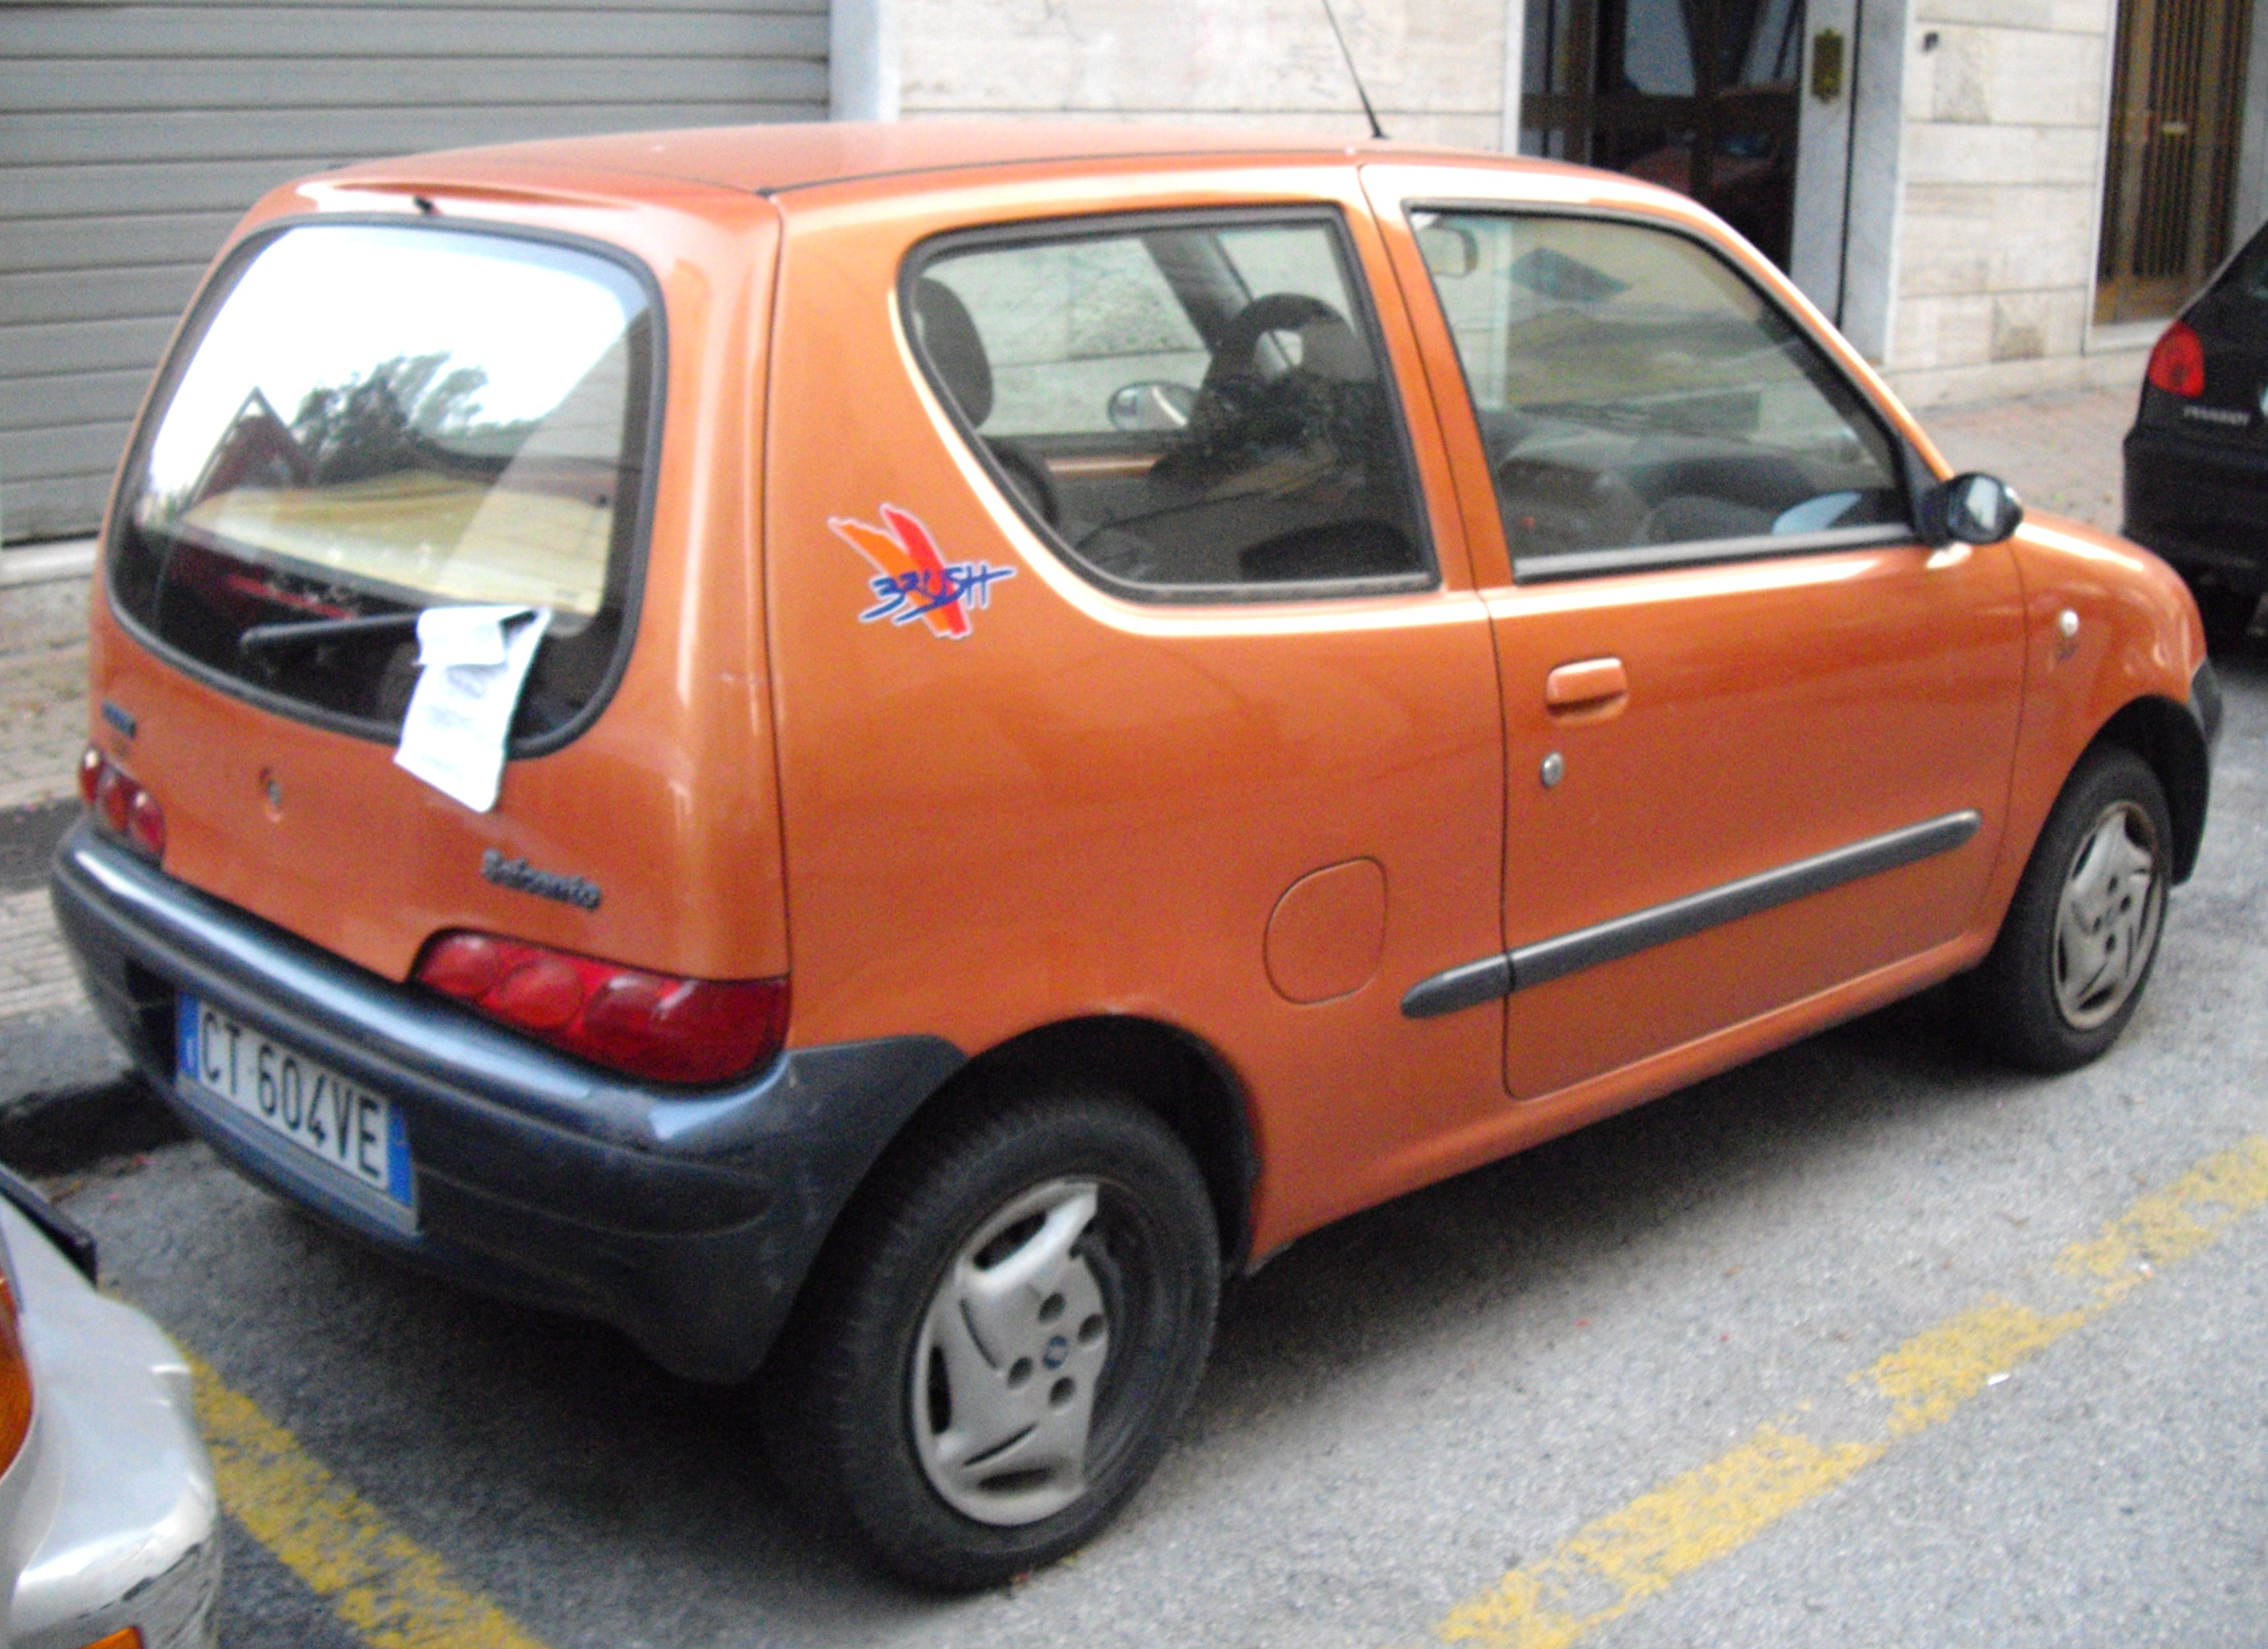 fiat seicento images #12